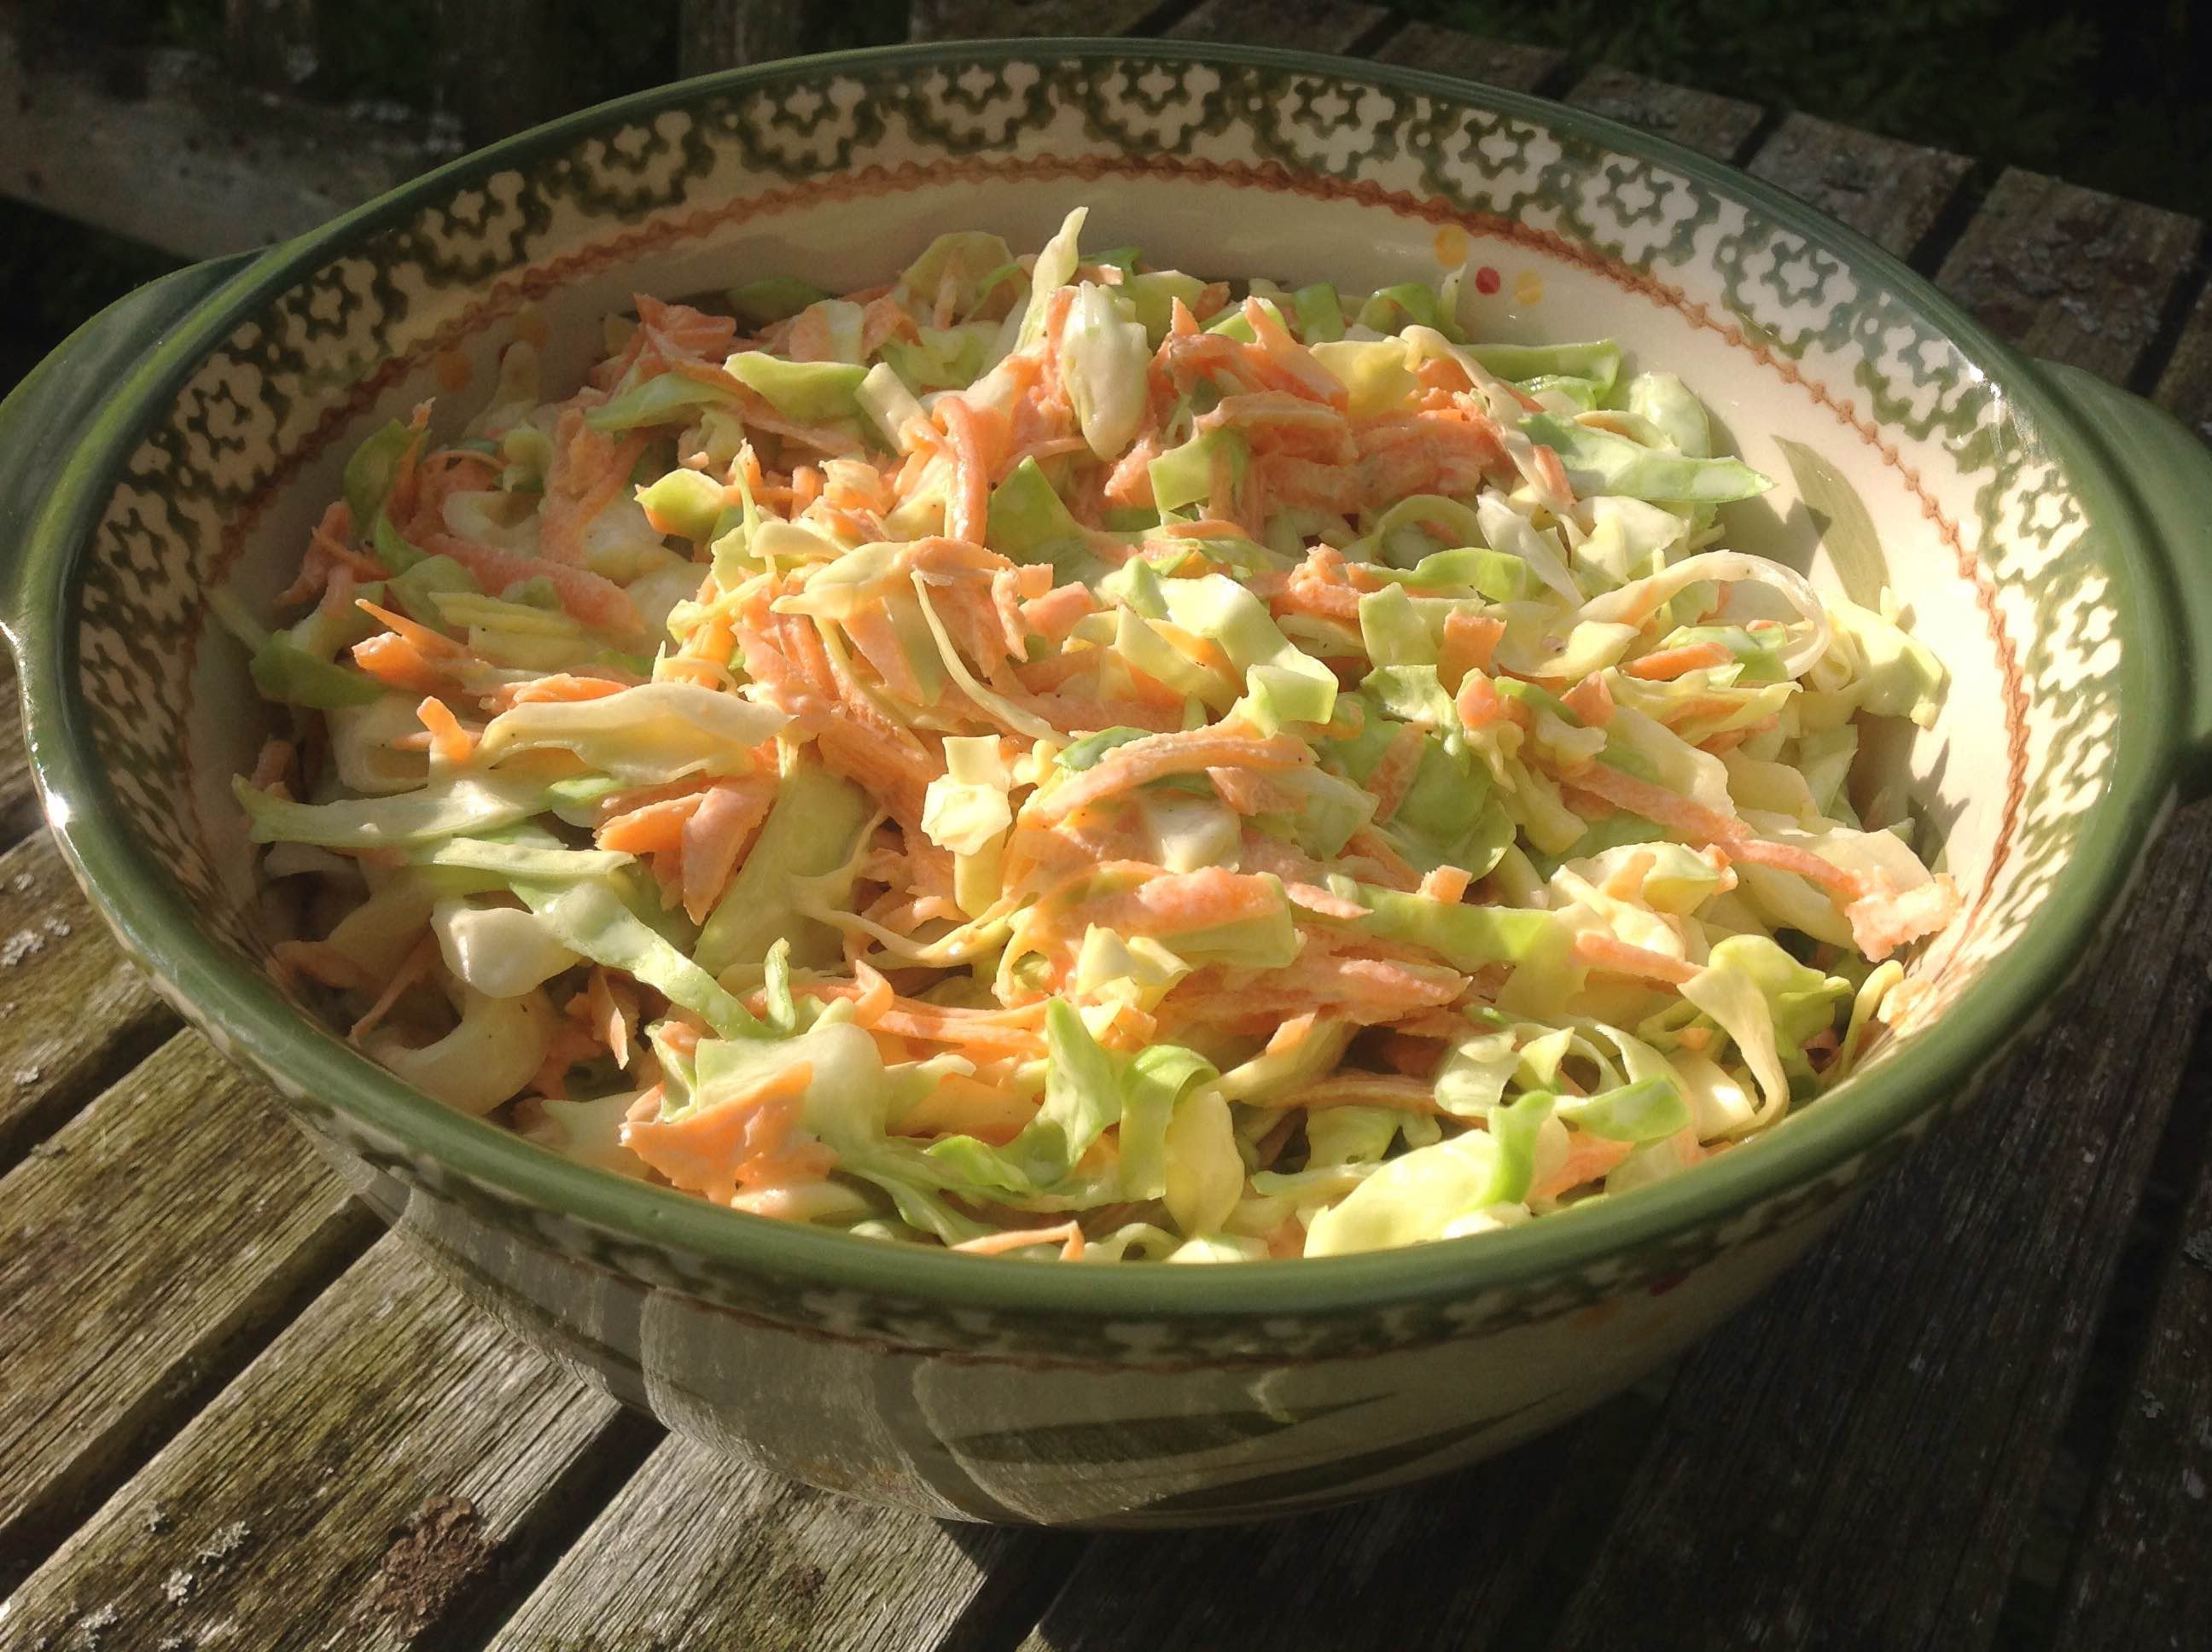 Koolsalade of Coleslaw